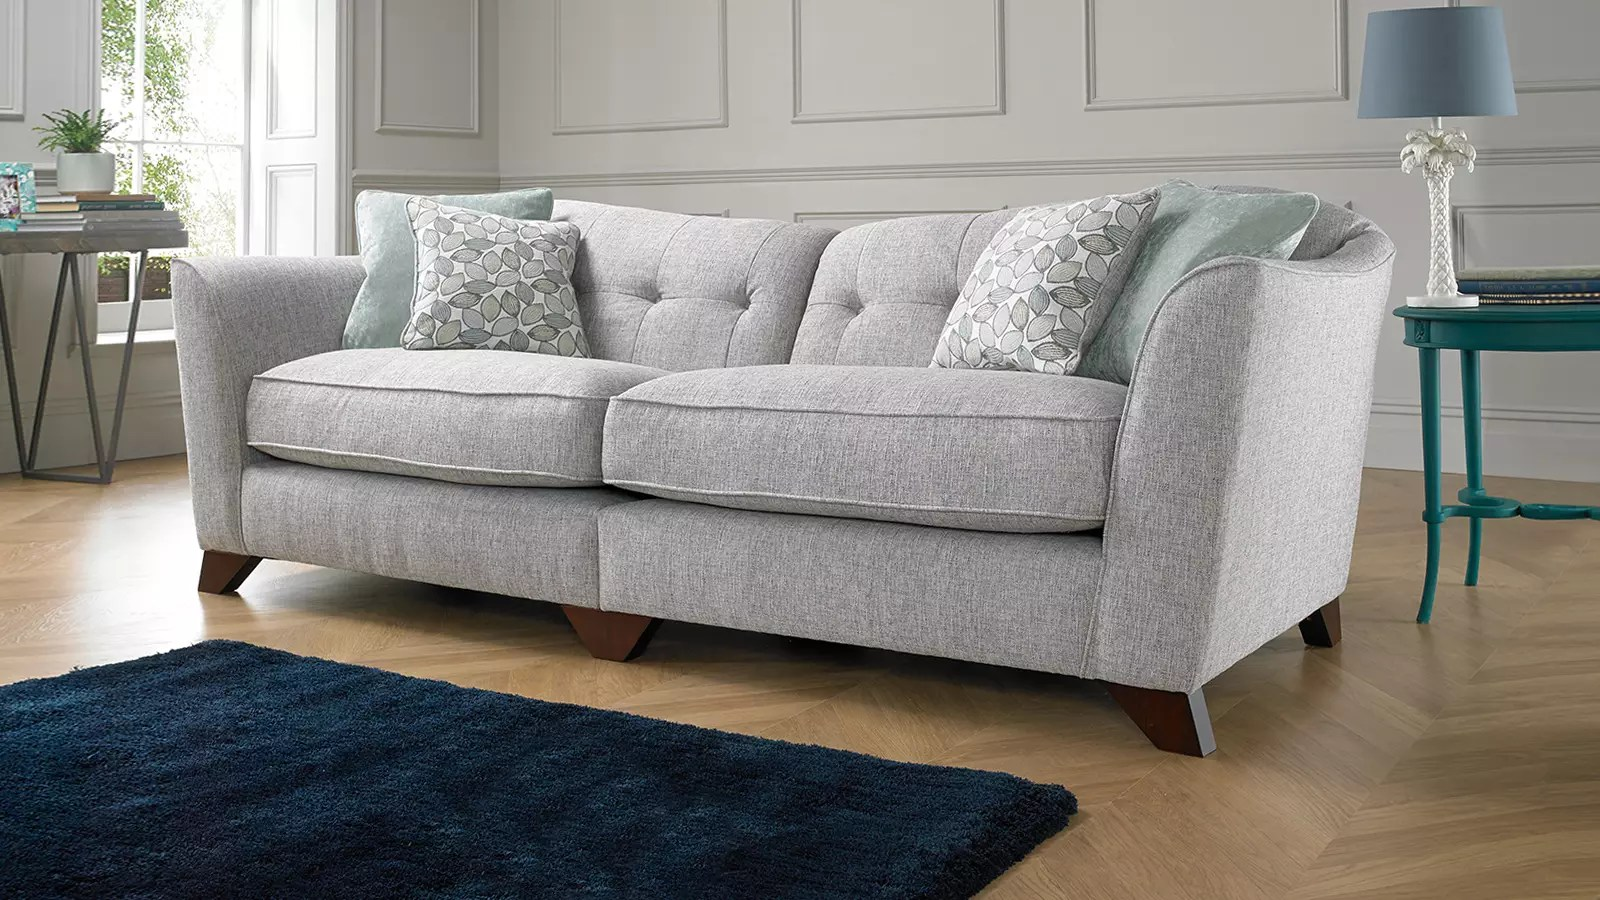 pratts corner sofas half round sectional sofa sofology beds and chairs always